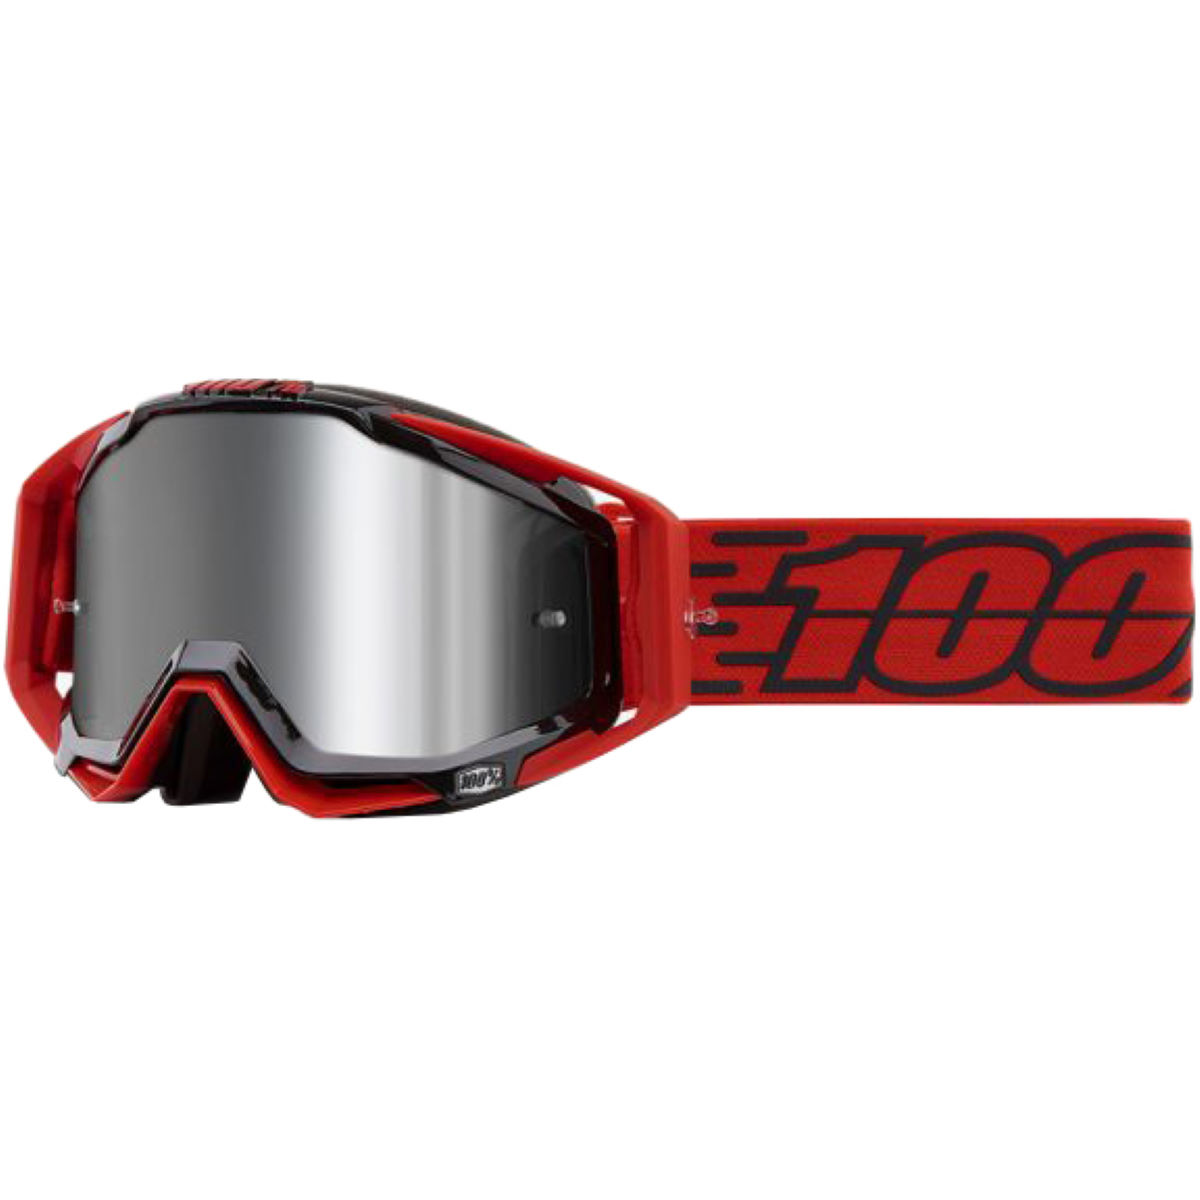 100% Racecraft Plus Goggles Mirror Lens - One Size Red